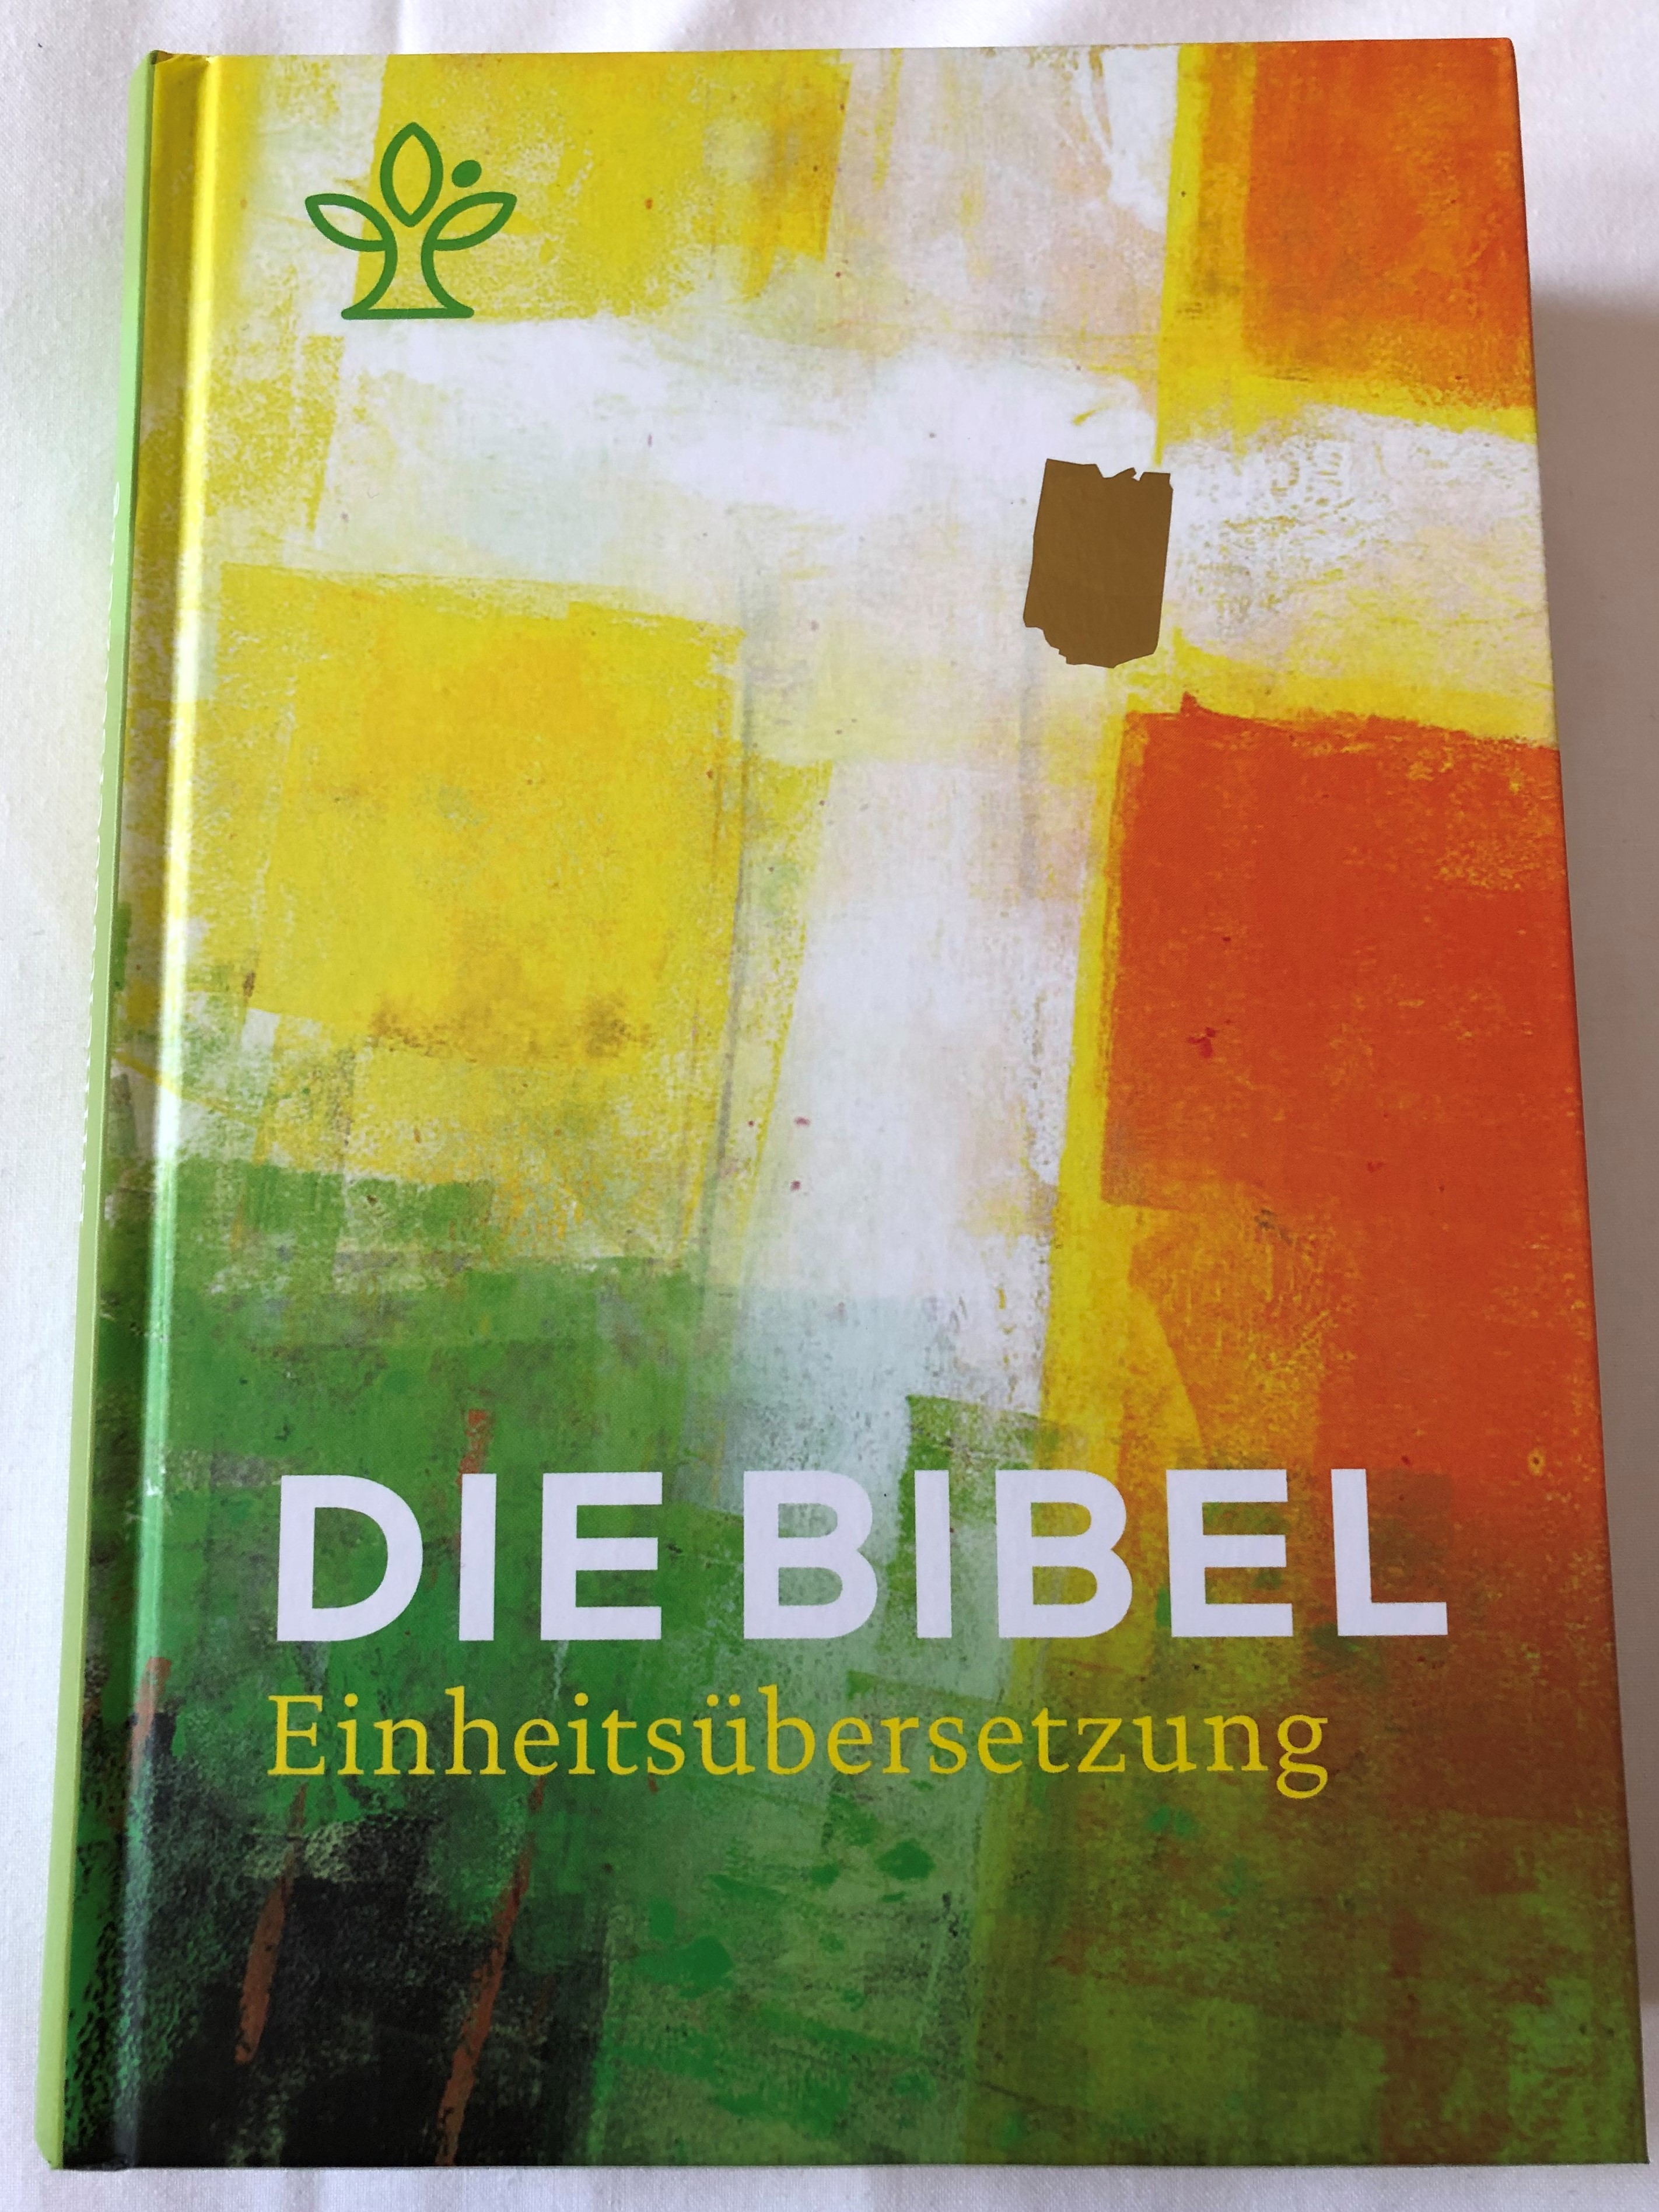 die-bibel-einheits-bersetzung-german-language-holy-bible-unitary-translation-contains-deuterocanonical-books-with-maps-notes-bible-history-timetable-ecumenical-reading-plan-hardcover-2018-kbw-1-.jpg